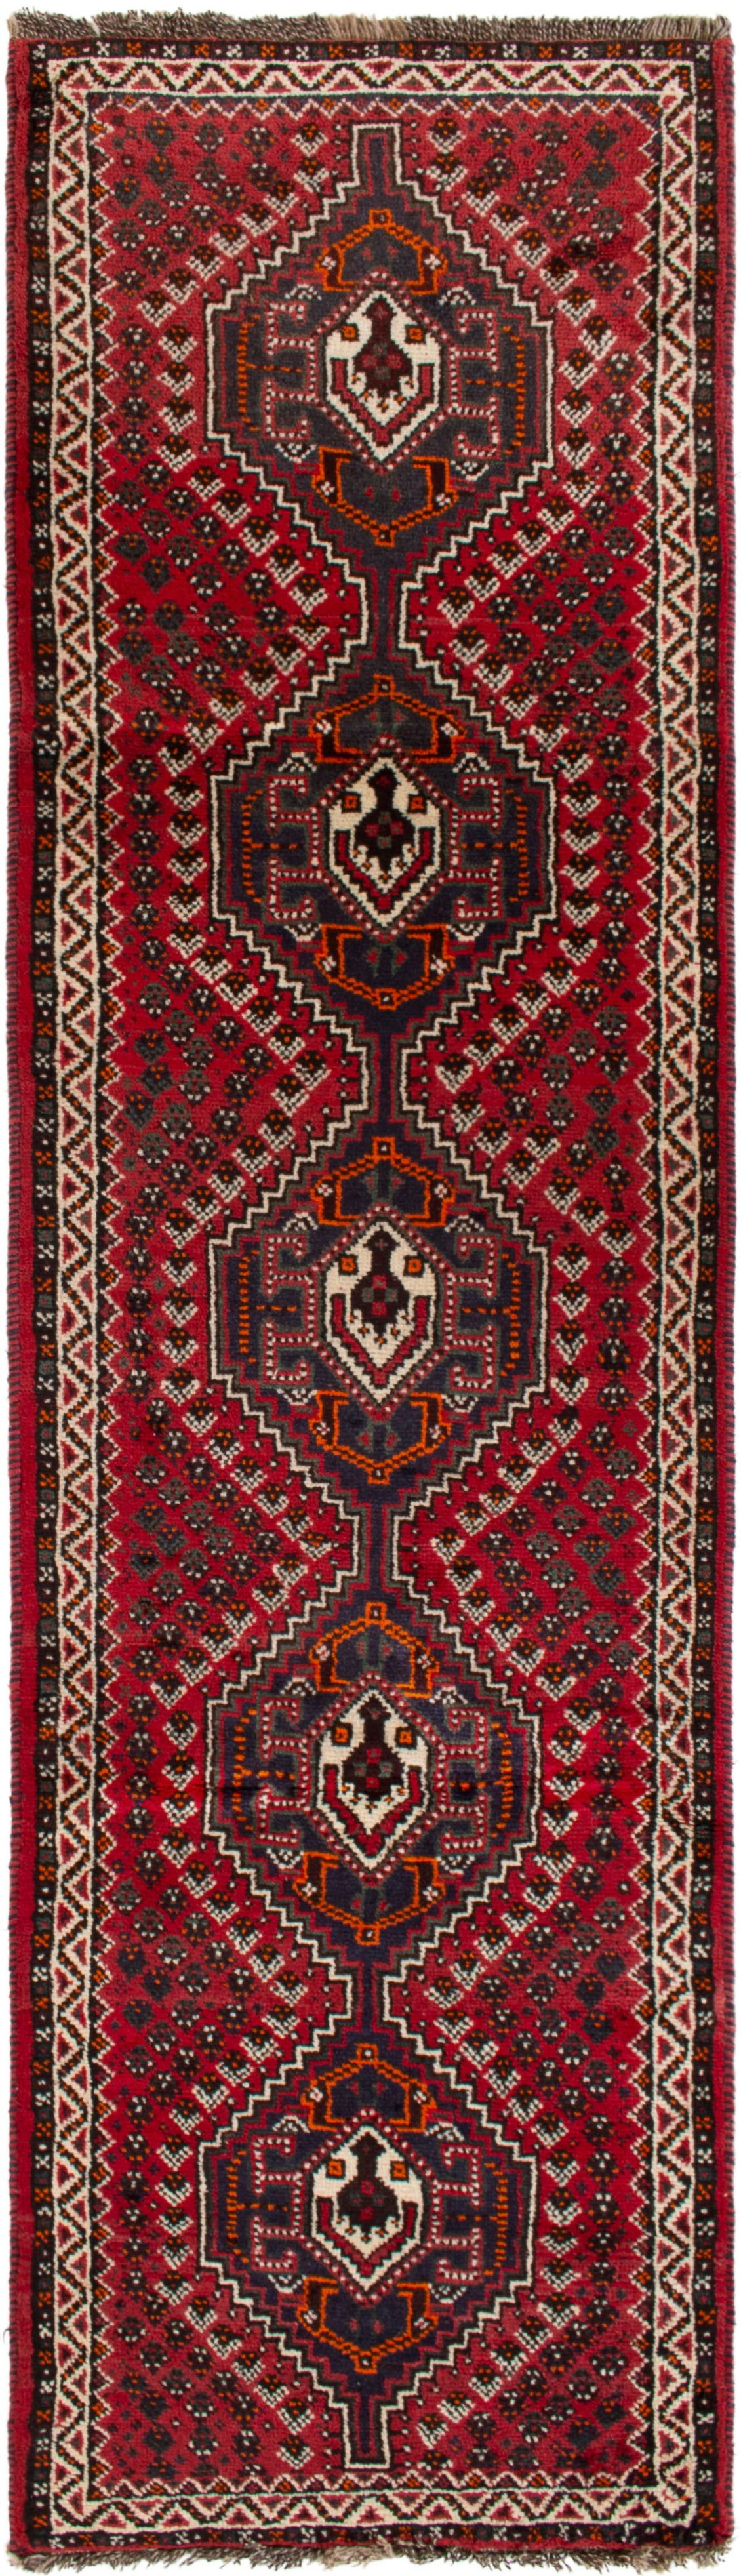 """Hand-knotted Shiraz  Wool Rug 2'8"""" x 9'9""""  Size: 2'7"""" x 9'9"""""""